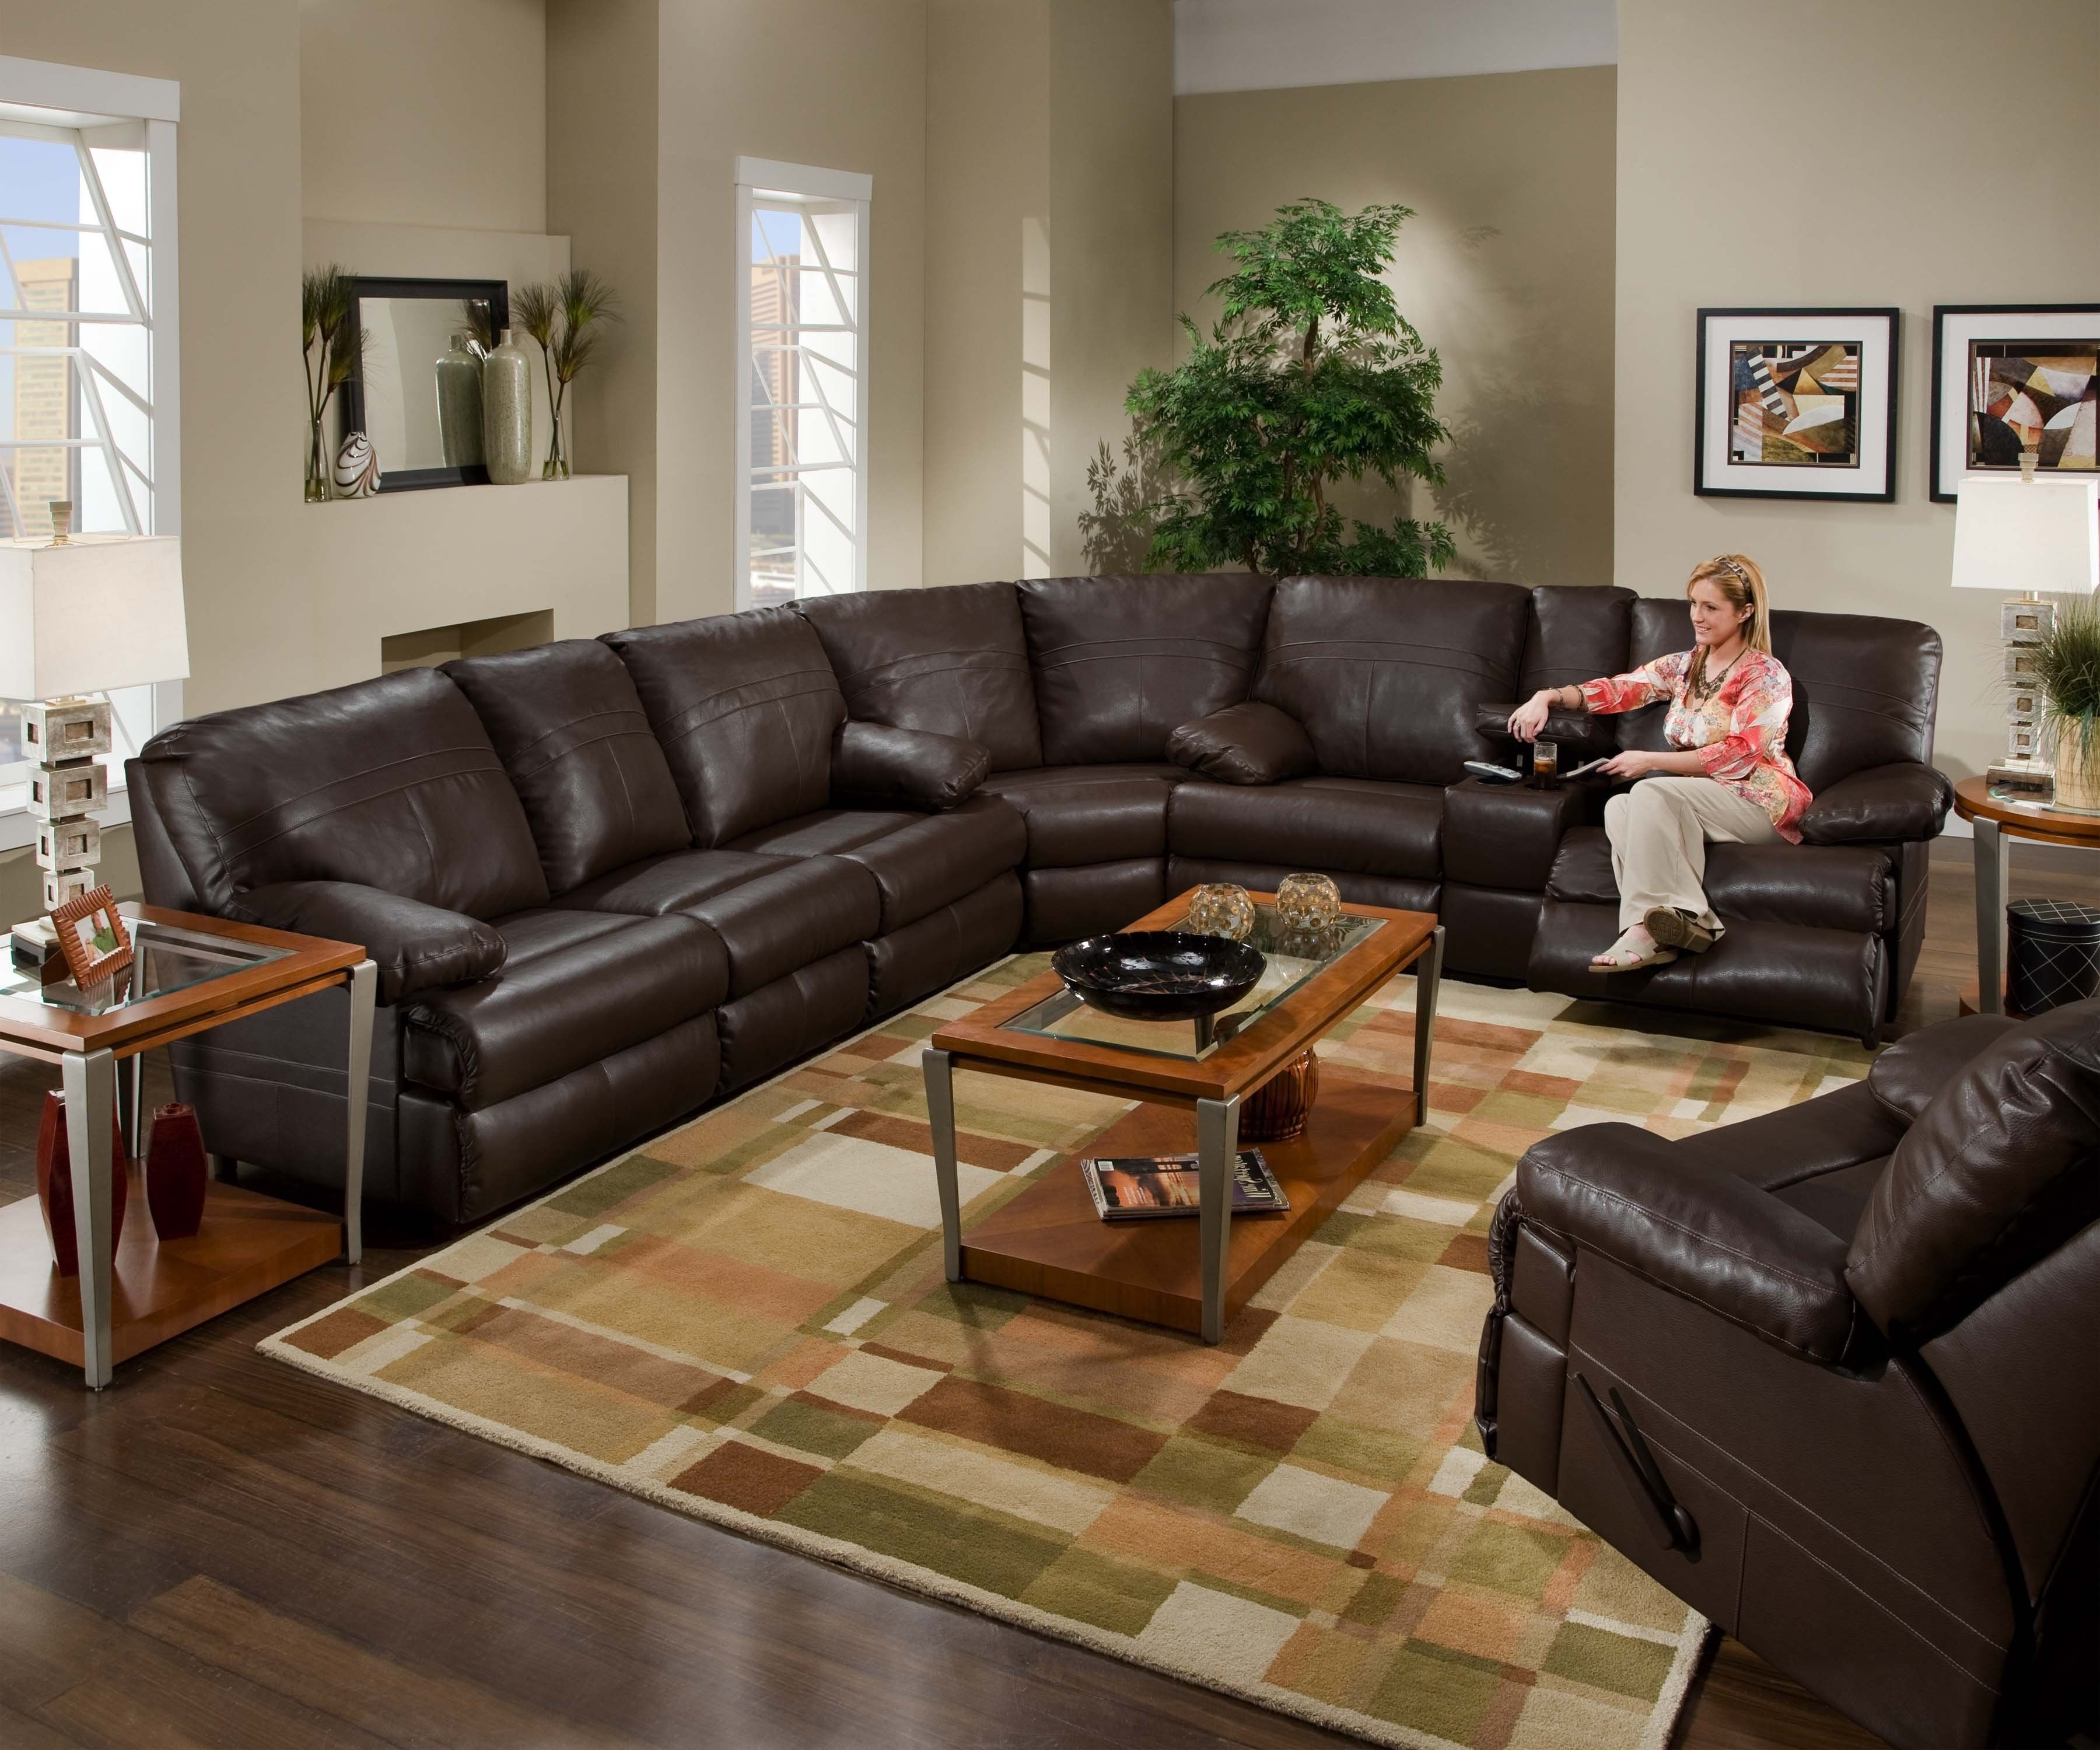 Trendy Halifax Sectional Sofas Pertaining To Sectional Leather Couch With Recliners. (View 17 of 20)